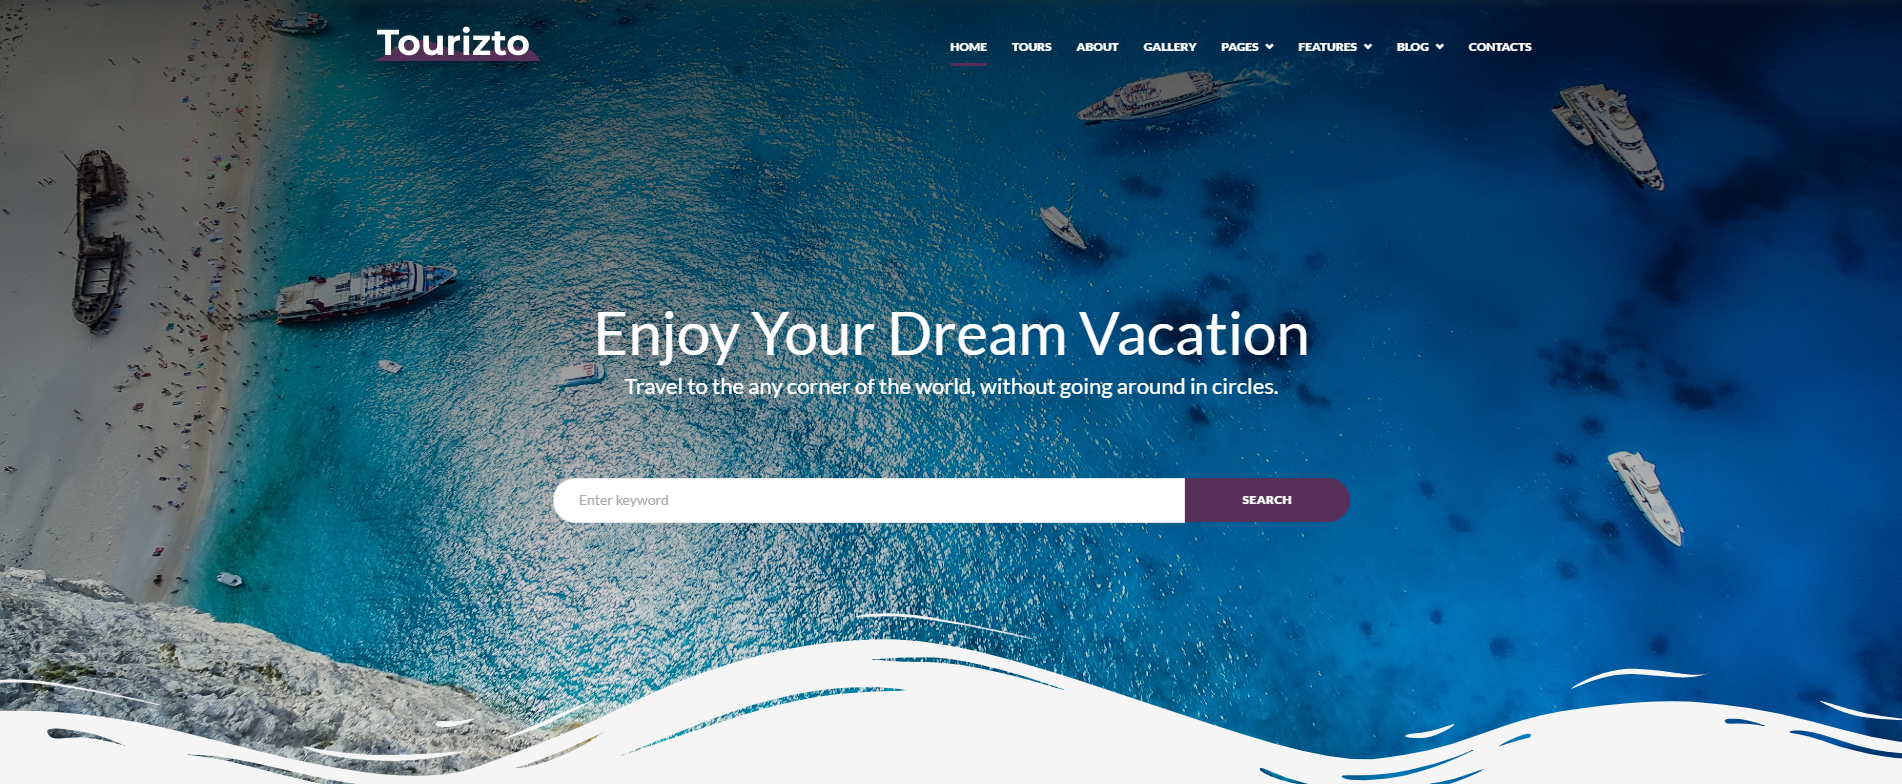 Develop a Professional Weebly website